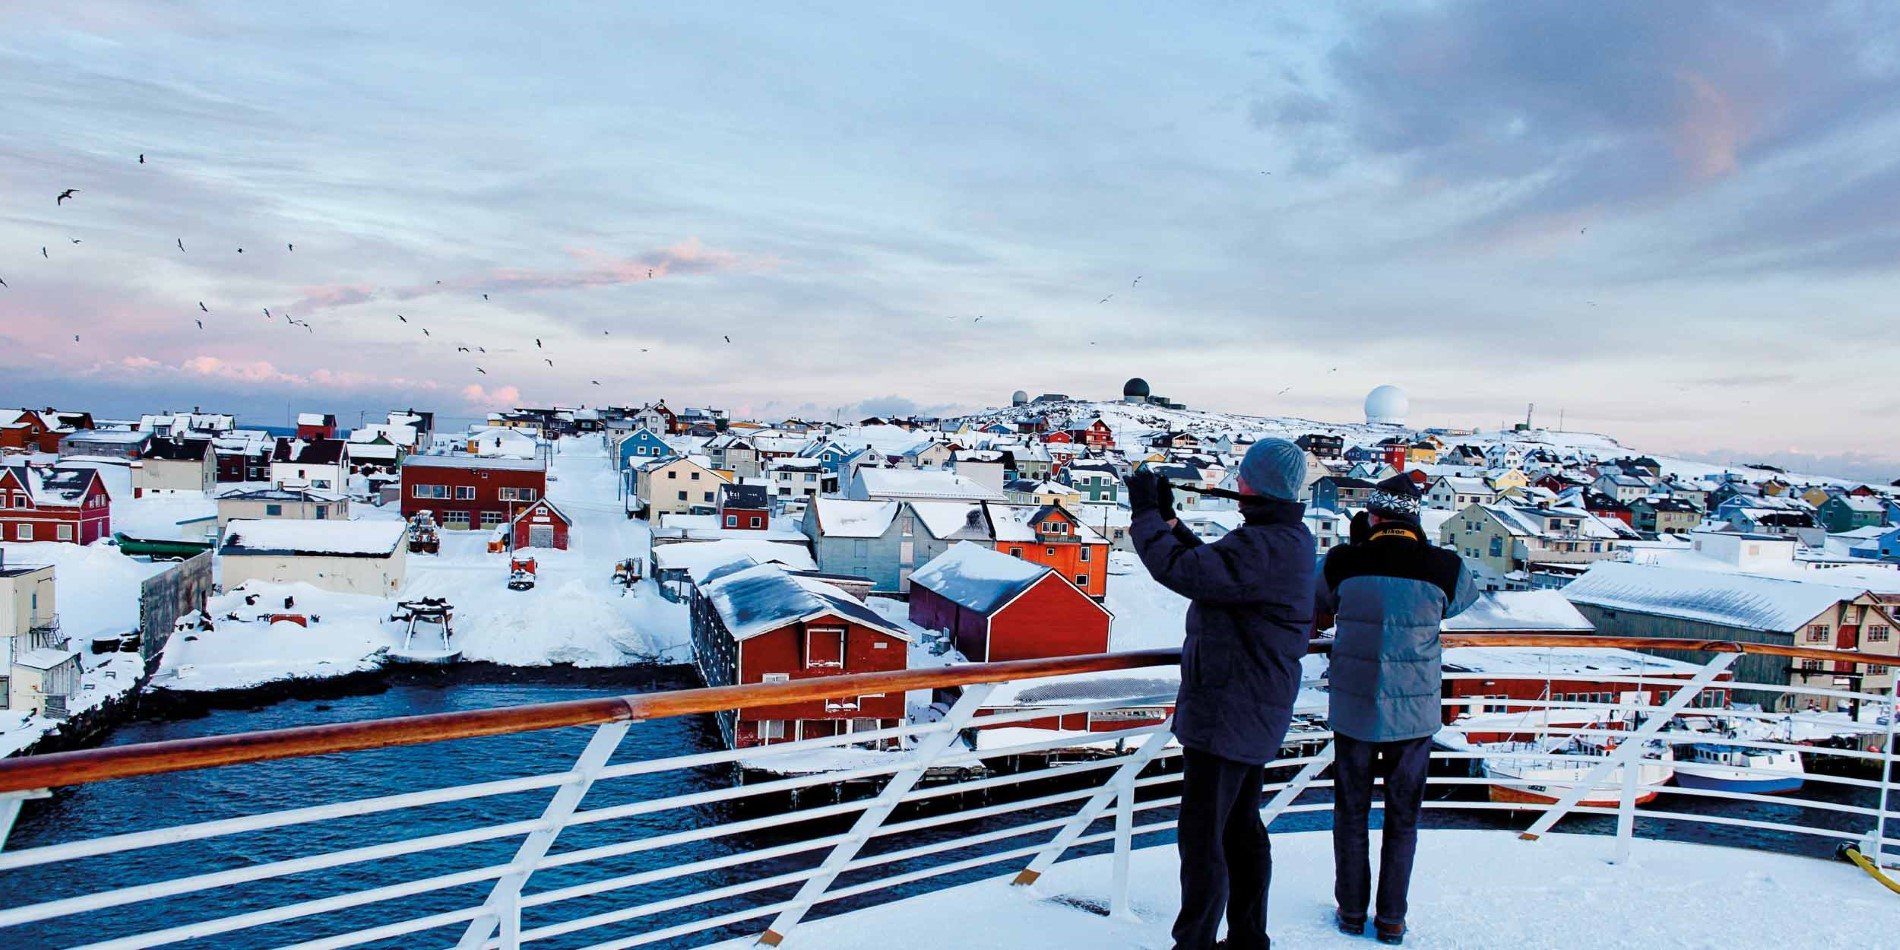 Vardø seen from out on deck, winter